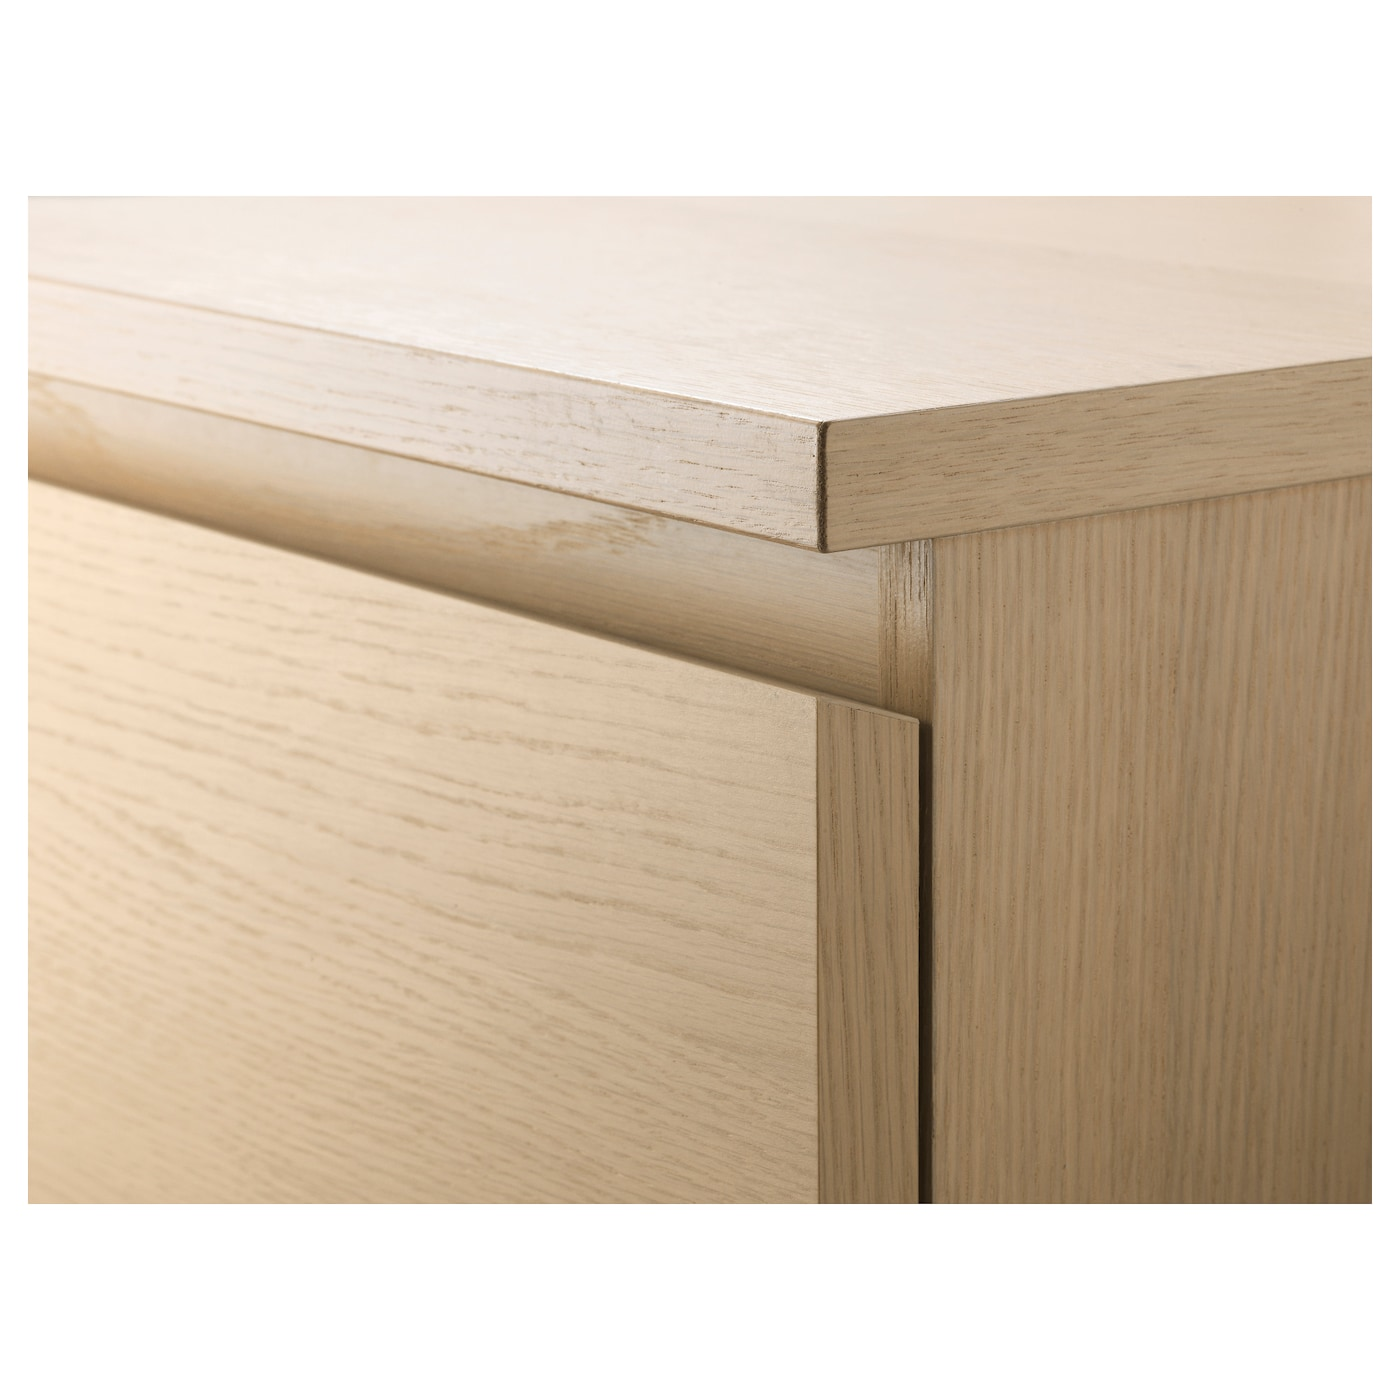 Malm chest of 3 drawers white stained oak veneer 80x78 cm for Mesillas ikea precios